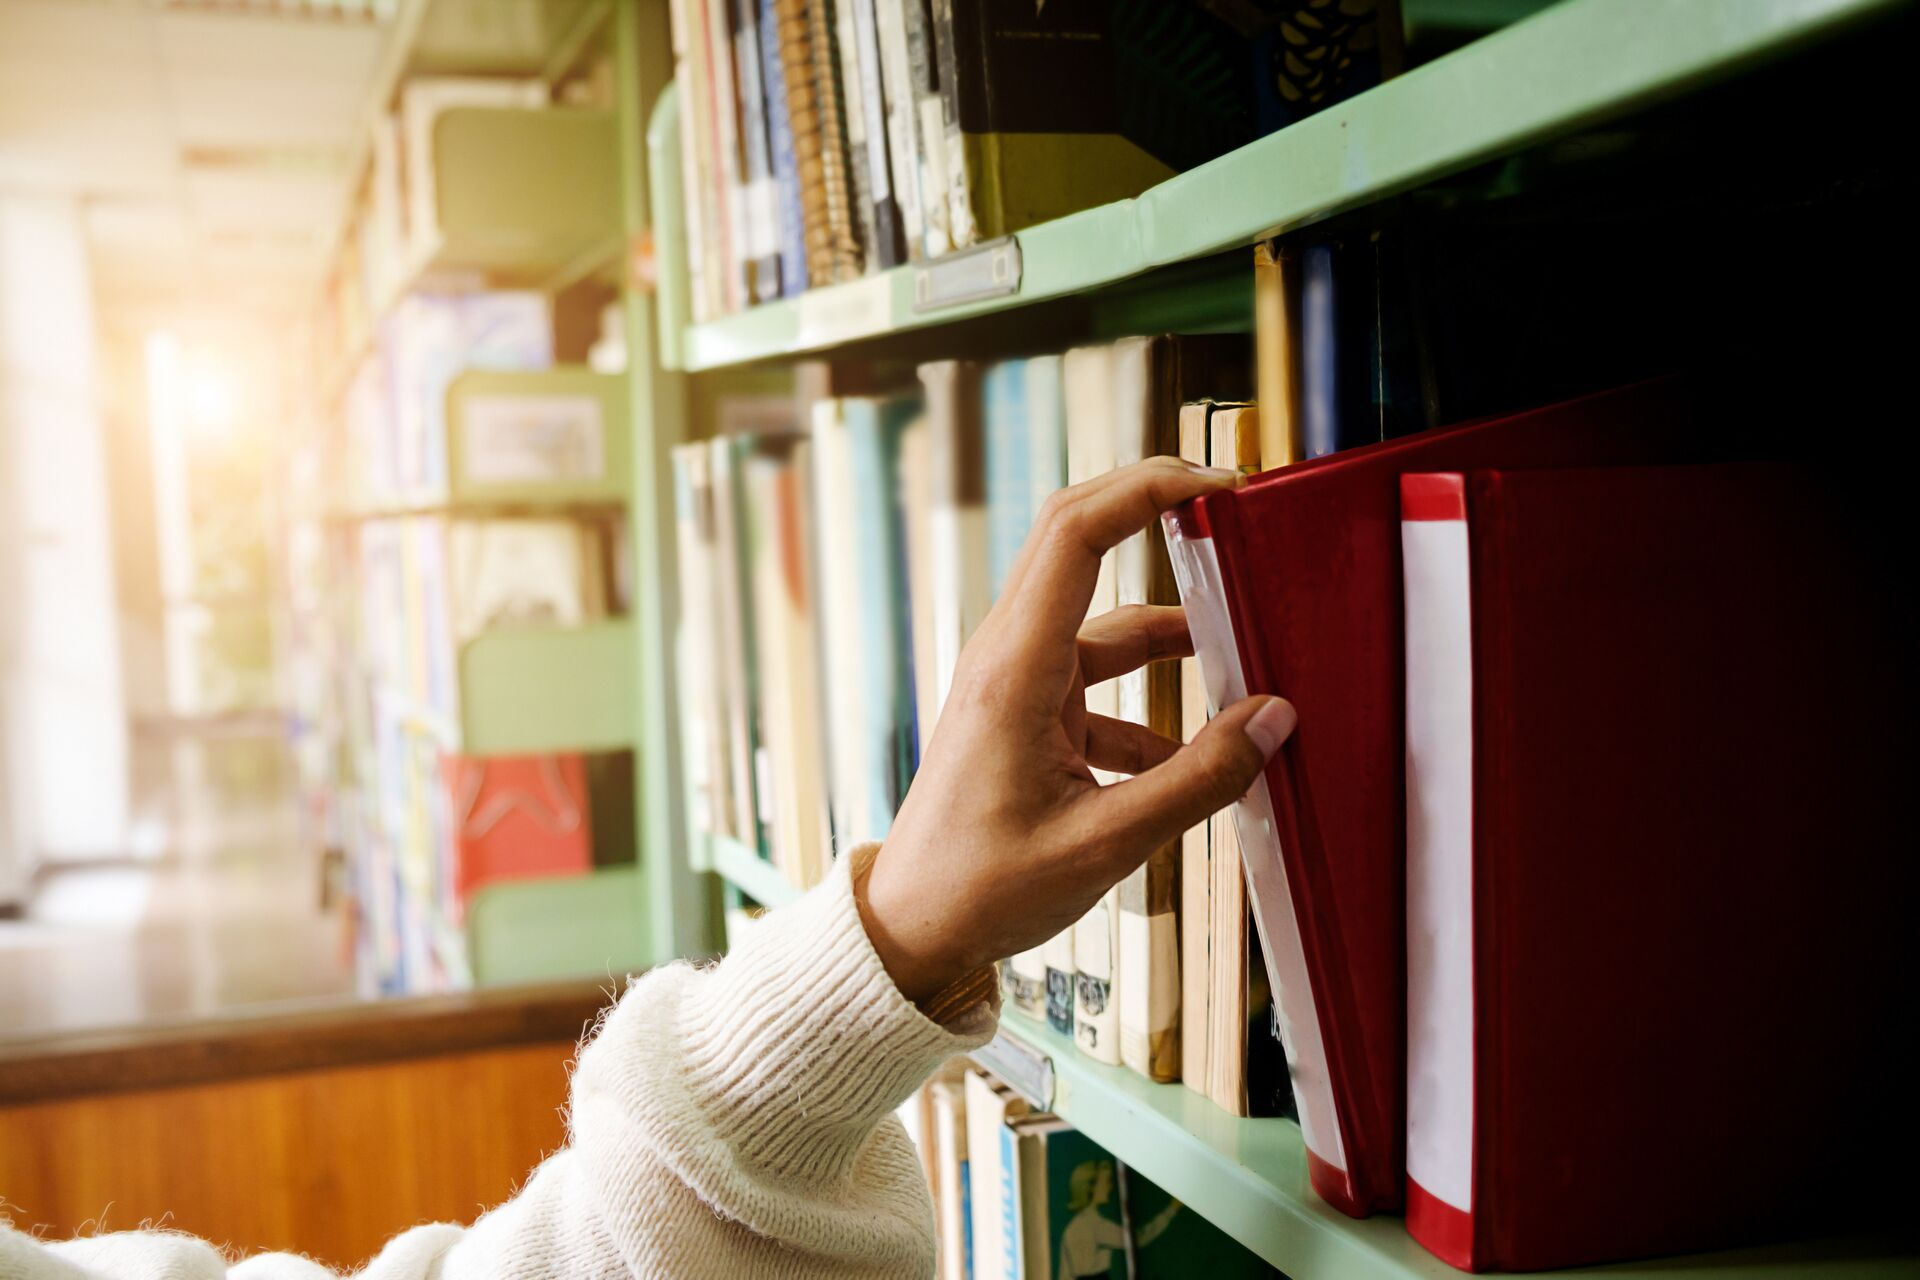 a hand choosing a book of a library shelf